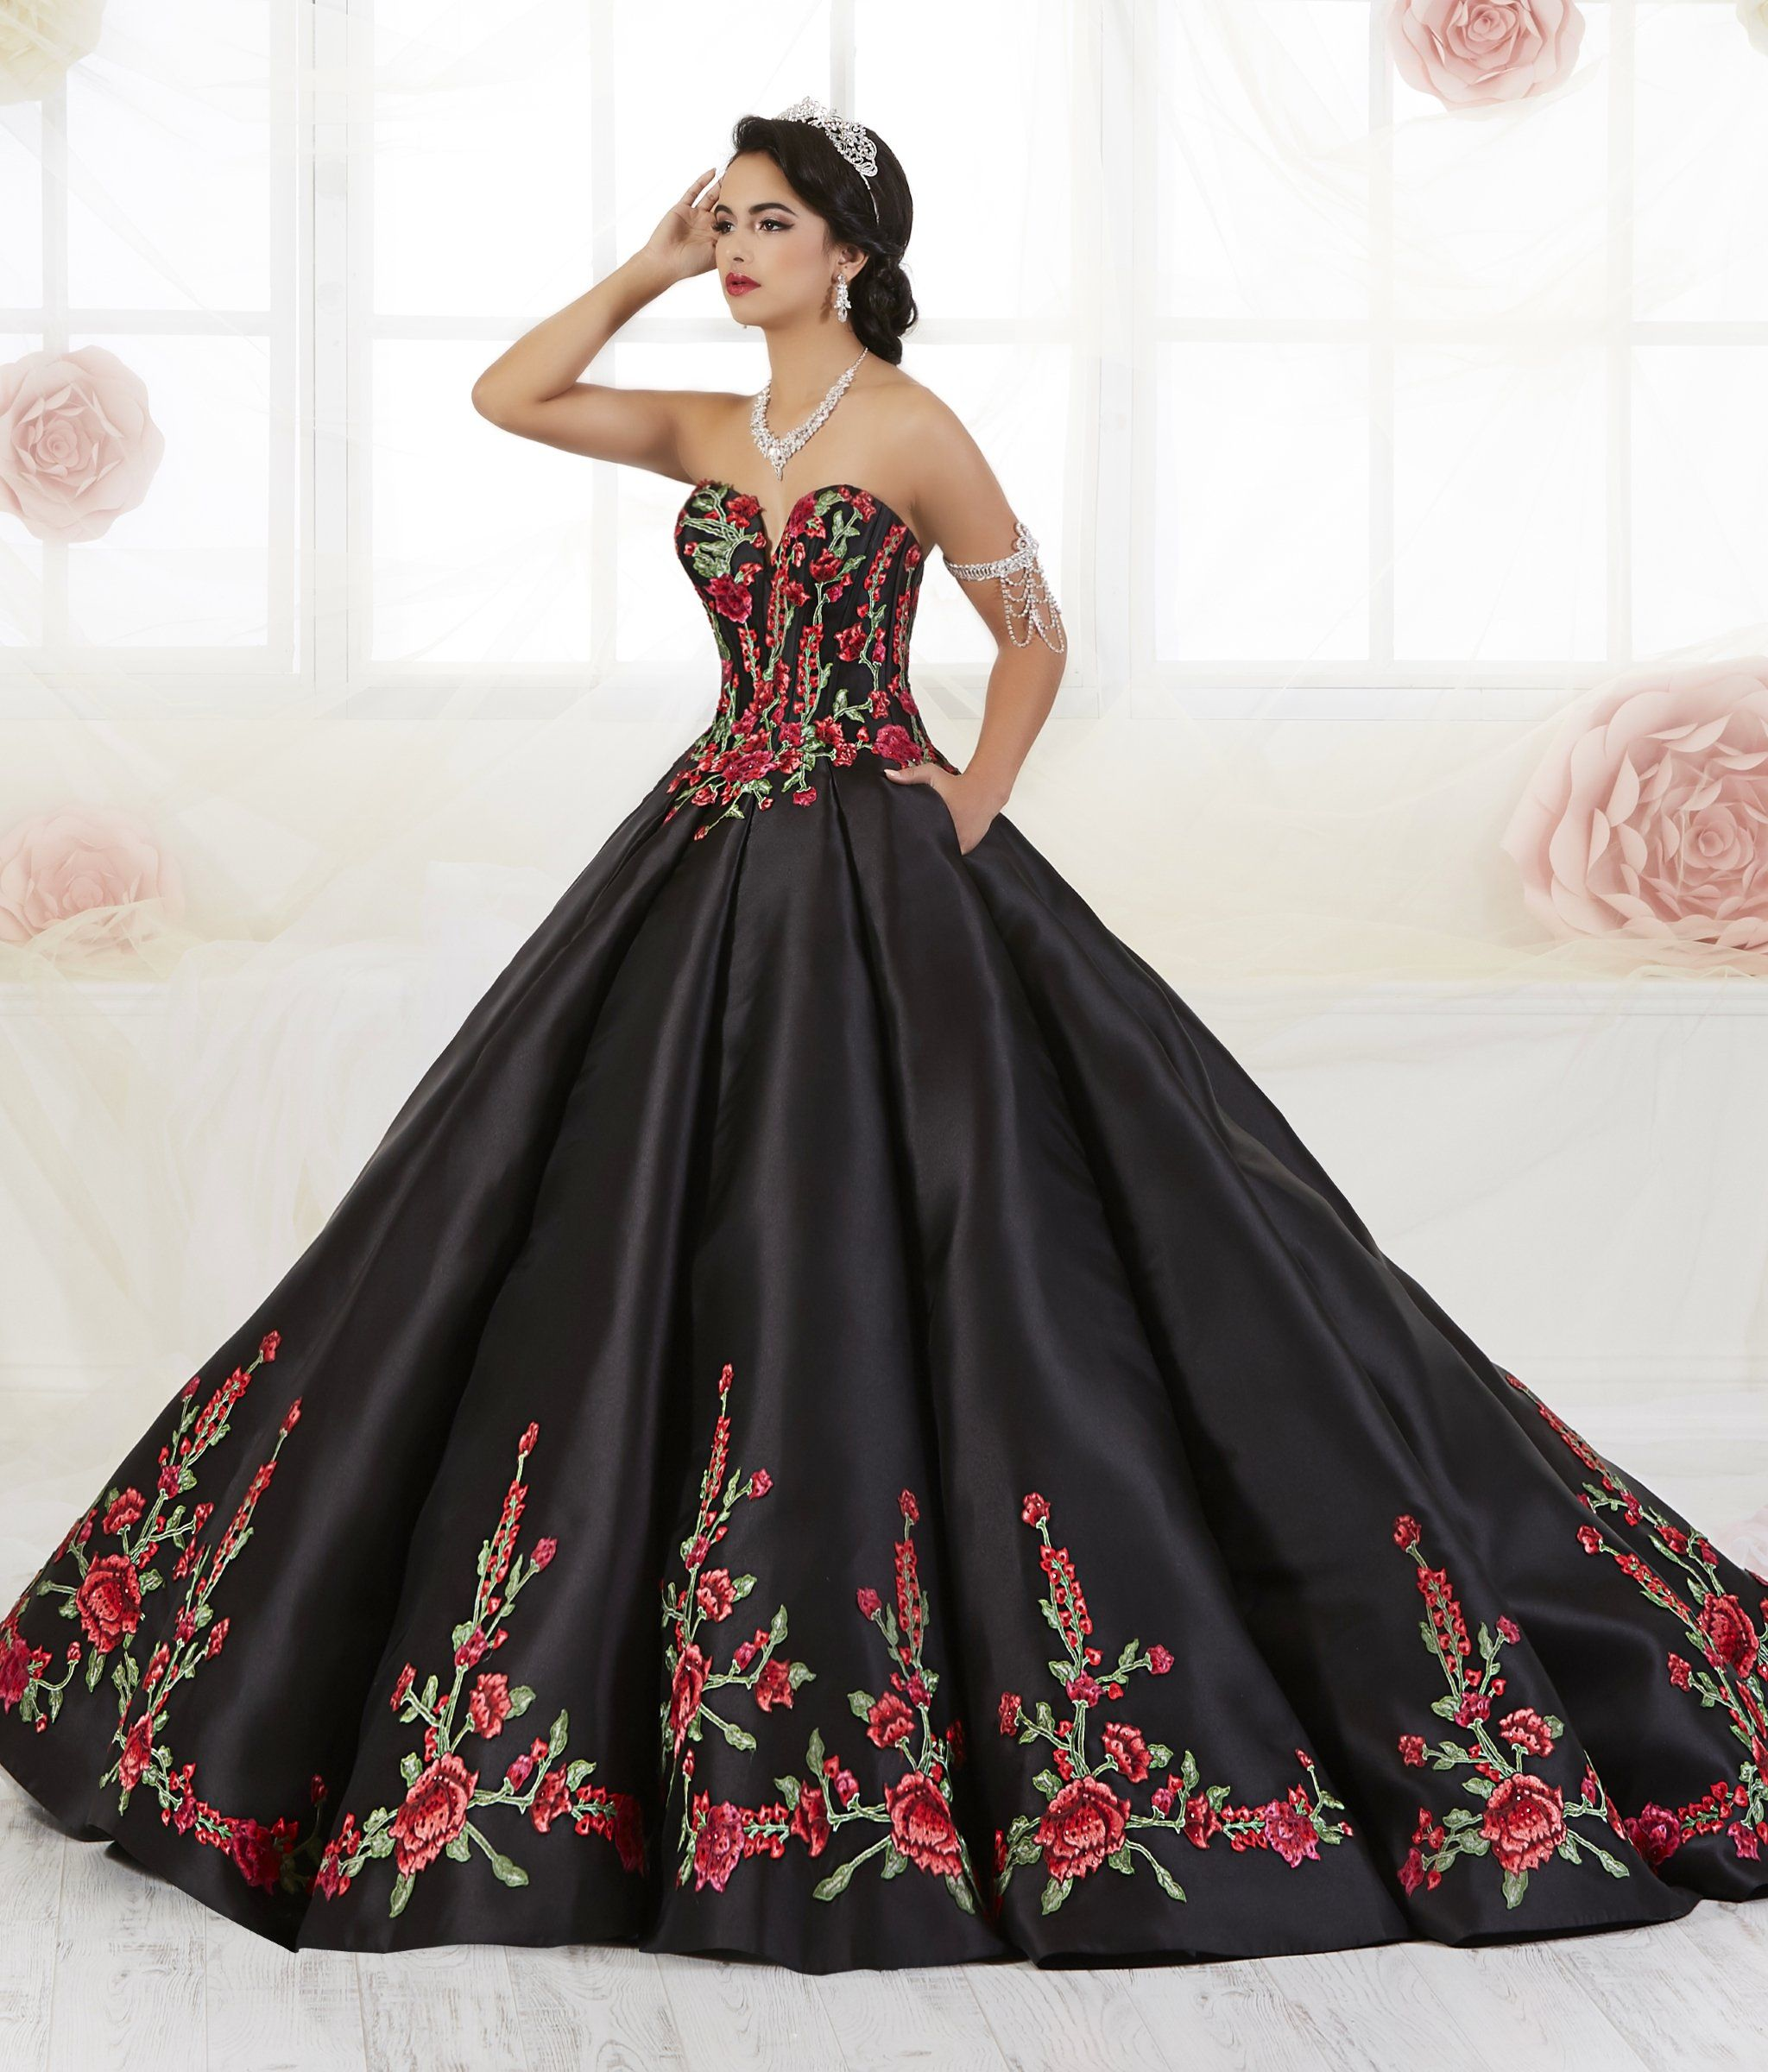 87d1bab61ee Floral Embroidered Quinceanera Dress by House of Wu 26908 in 2019 ...